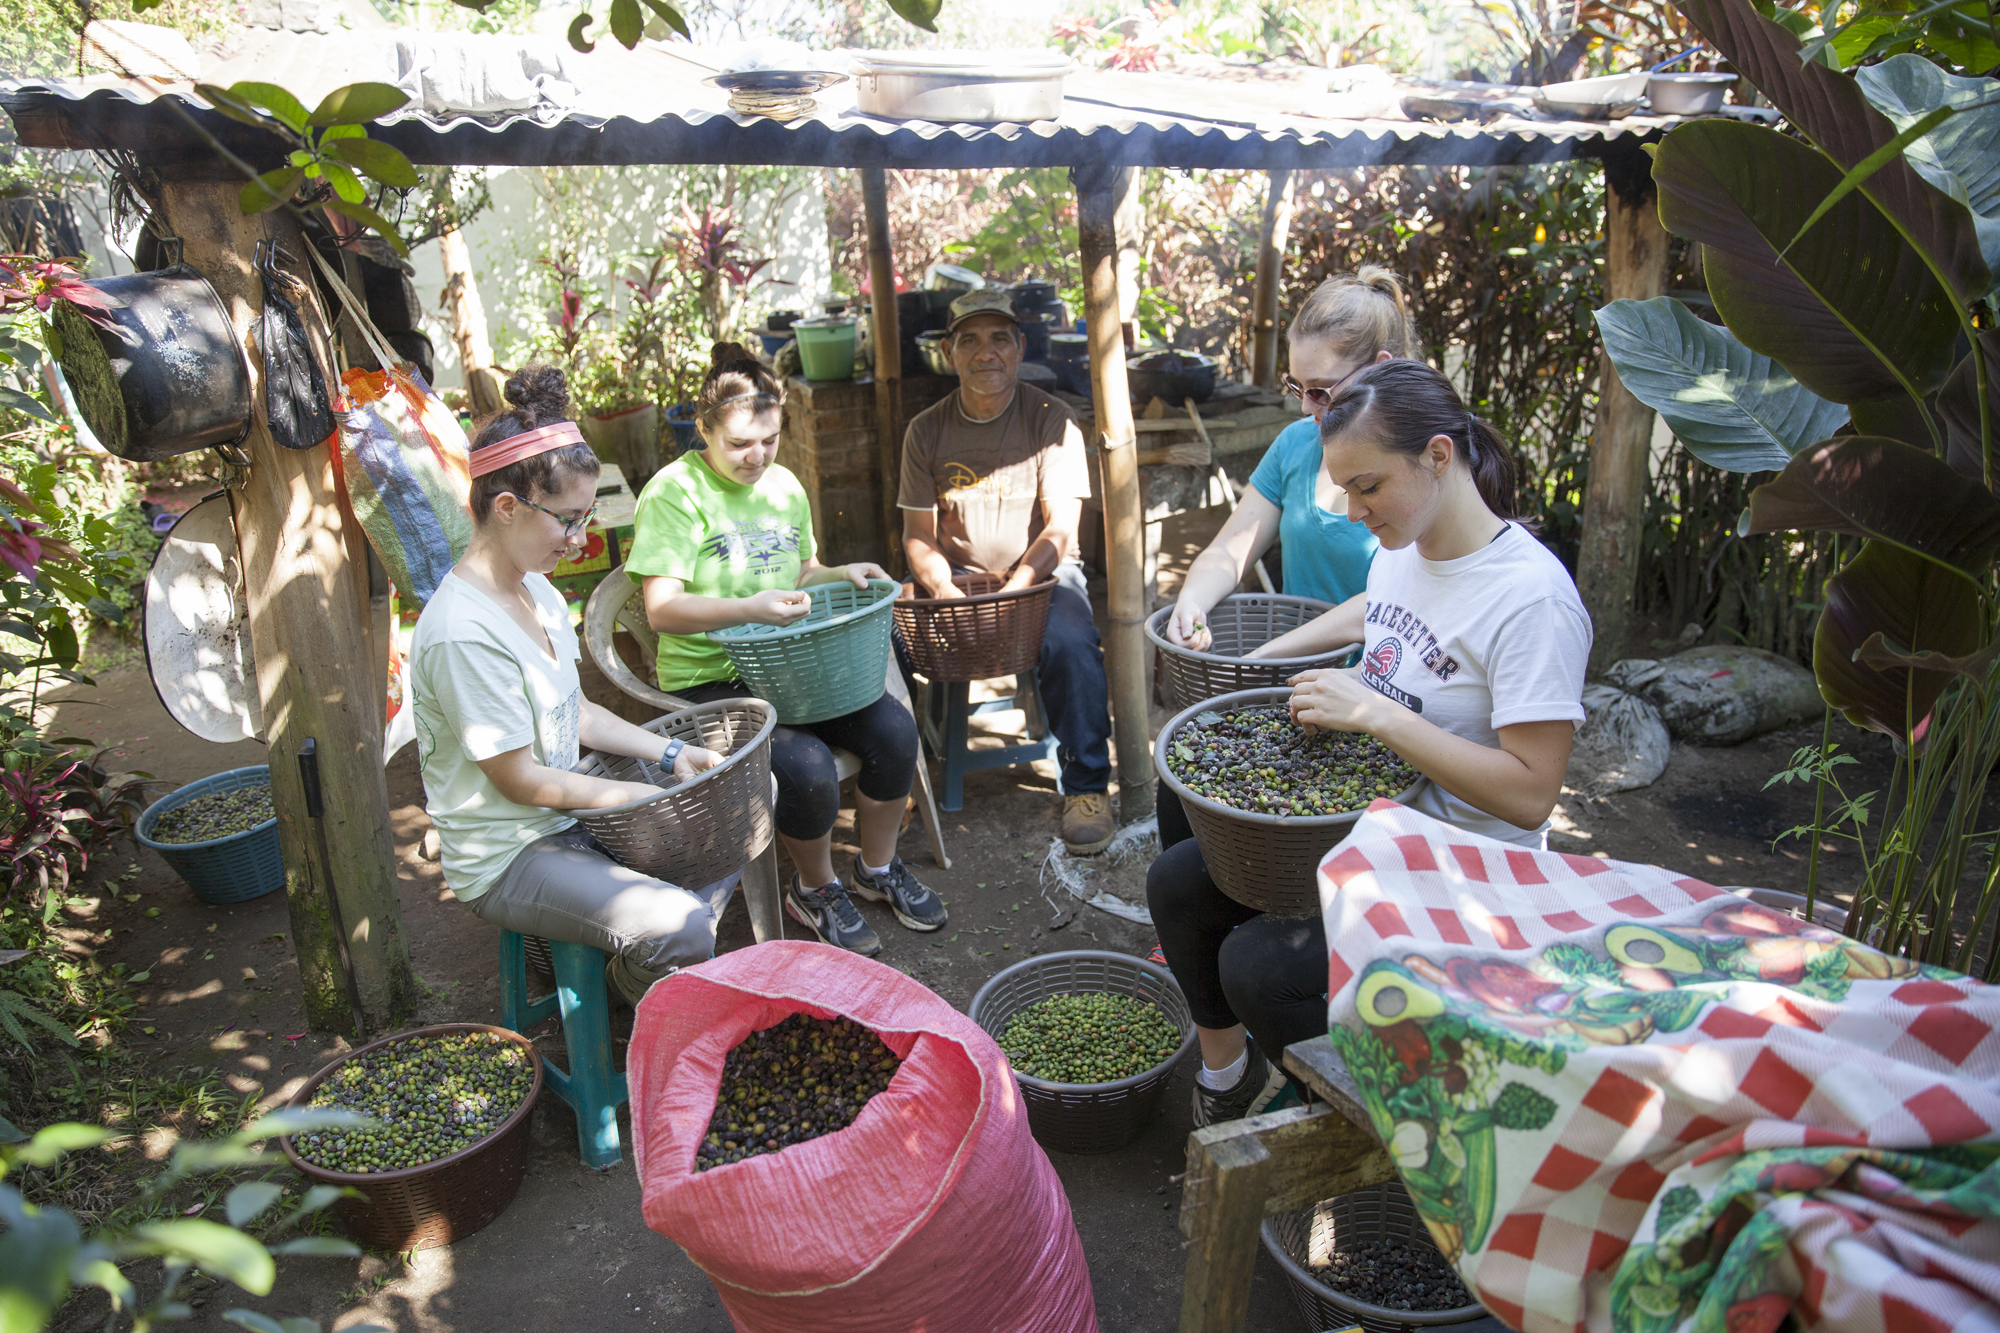 Groups spend time in the homes of the coffee producers working side to experience the local culture while sorting coffee for quality.